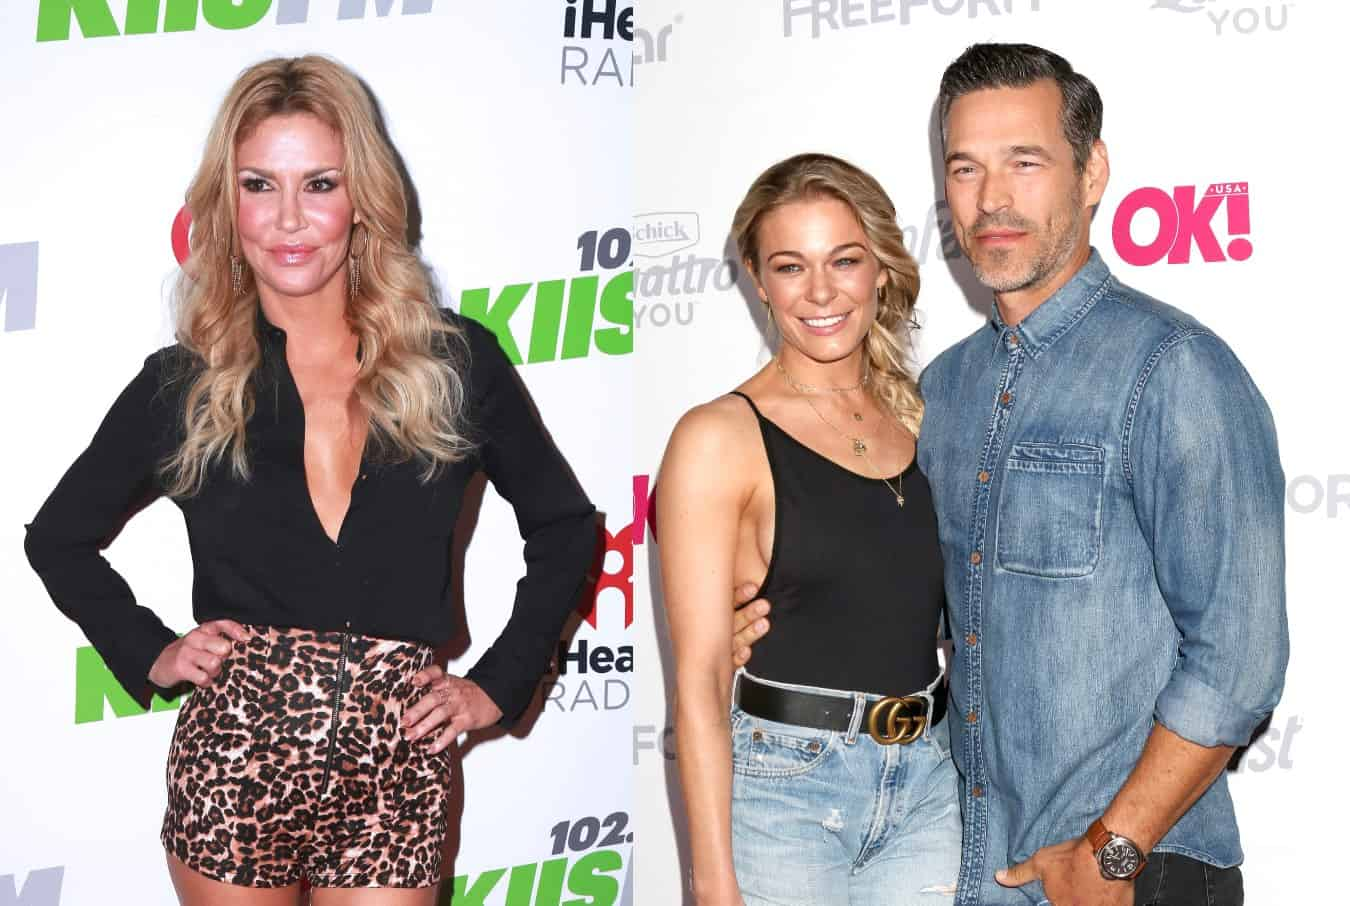 Brandi Glanville Reignites Feud With Eddie Cibrian and Leann Rimes, Accuses Them of Not Letting Her See Sons Amid Quarantine and Suggests She Move Into Their Guest House, Plus Why She Went Public